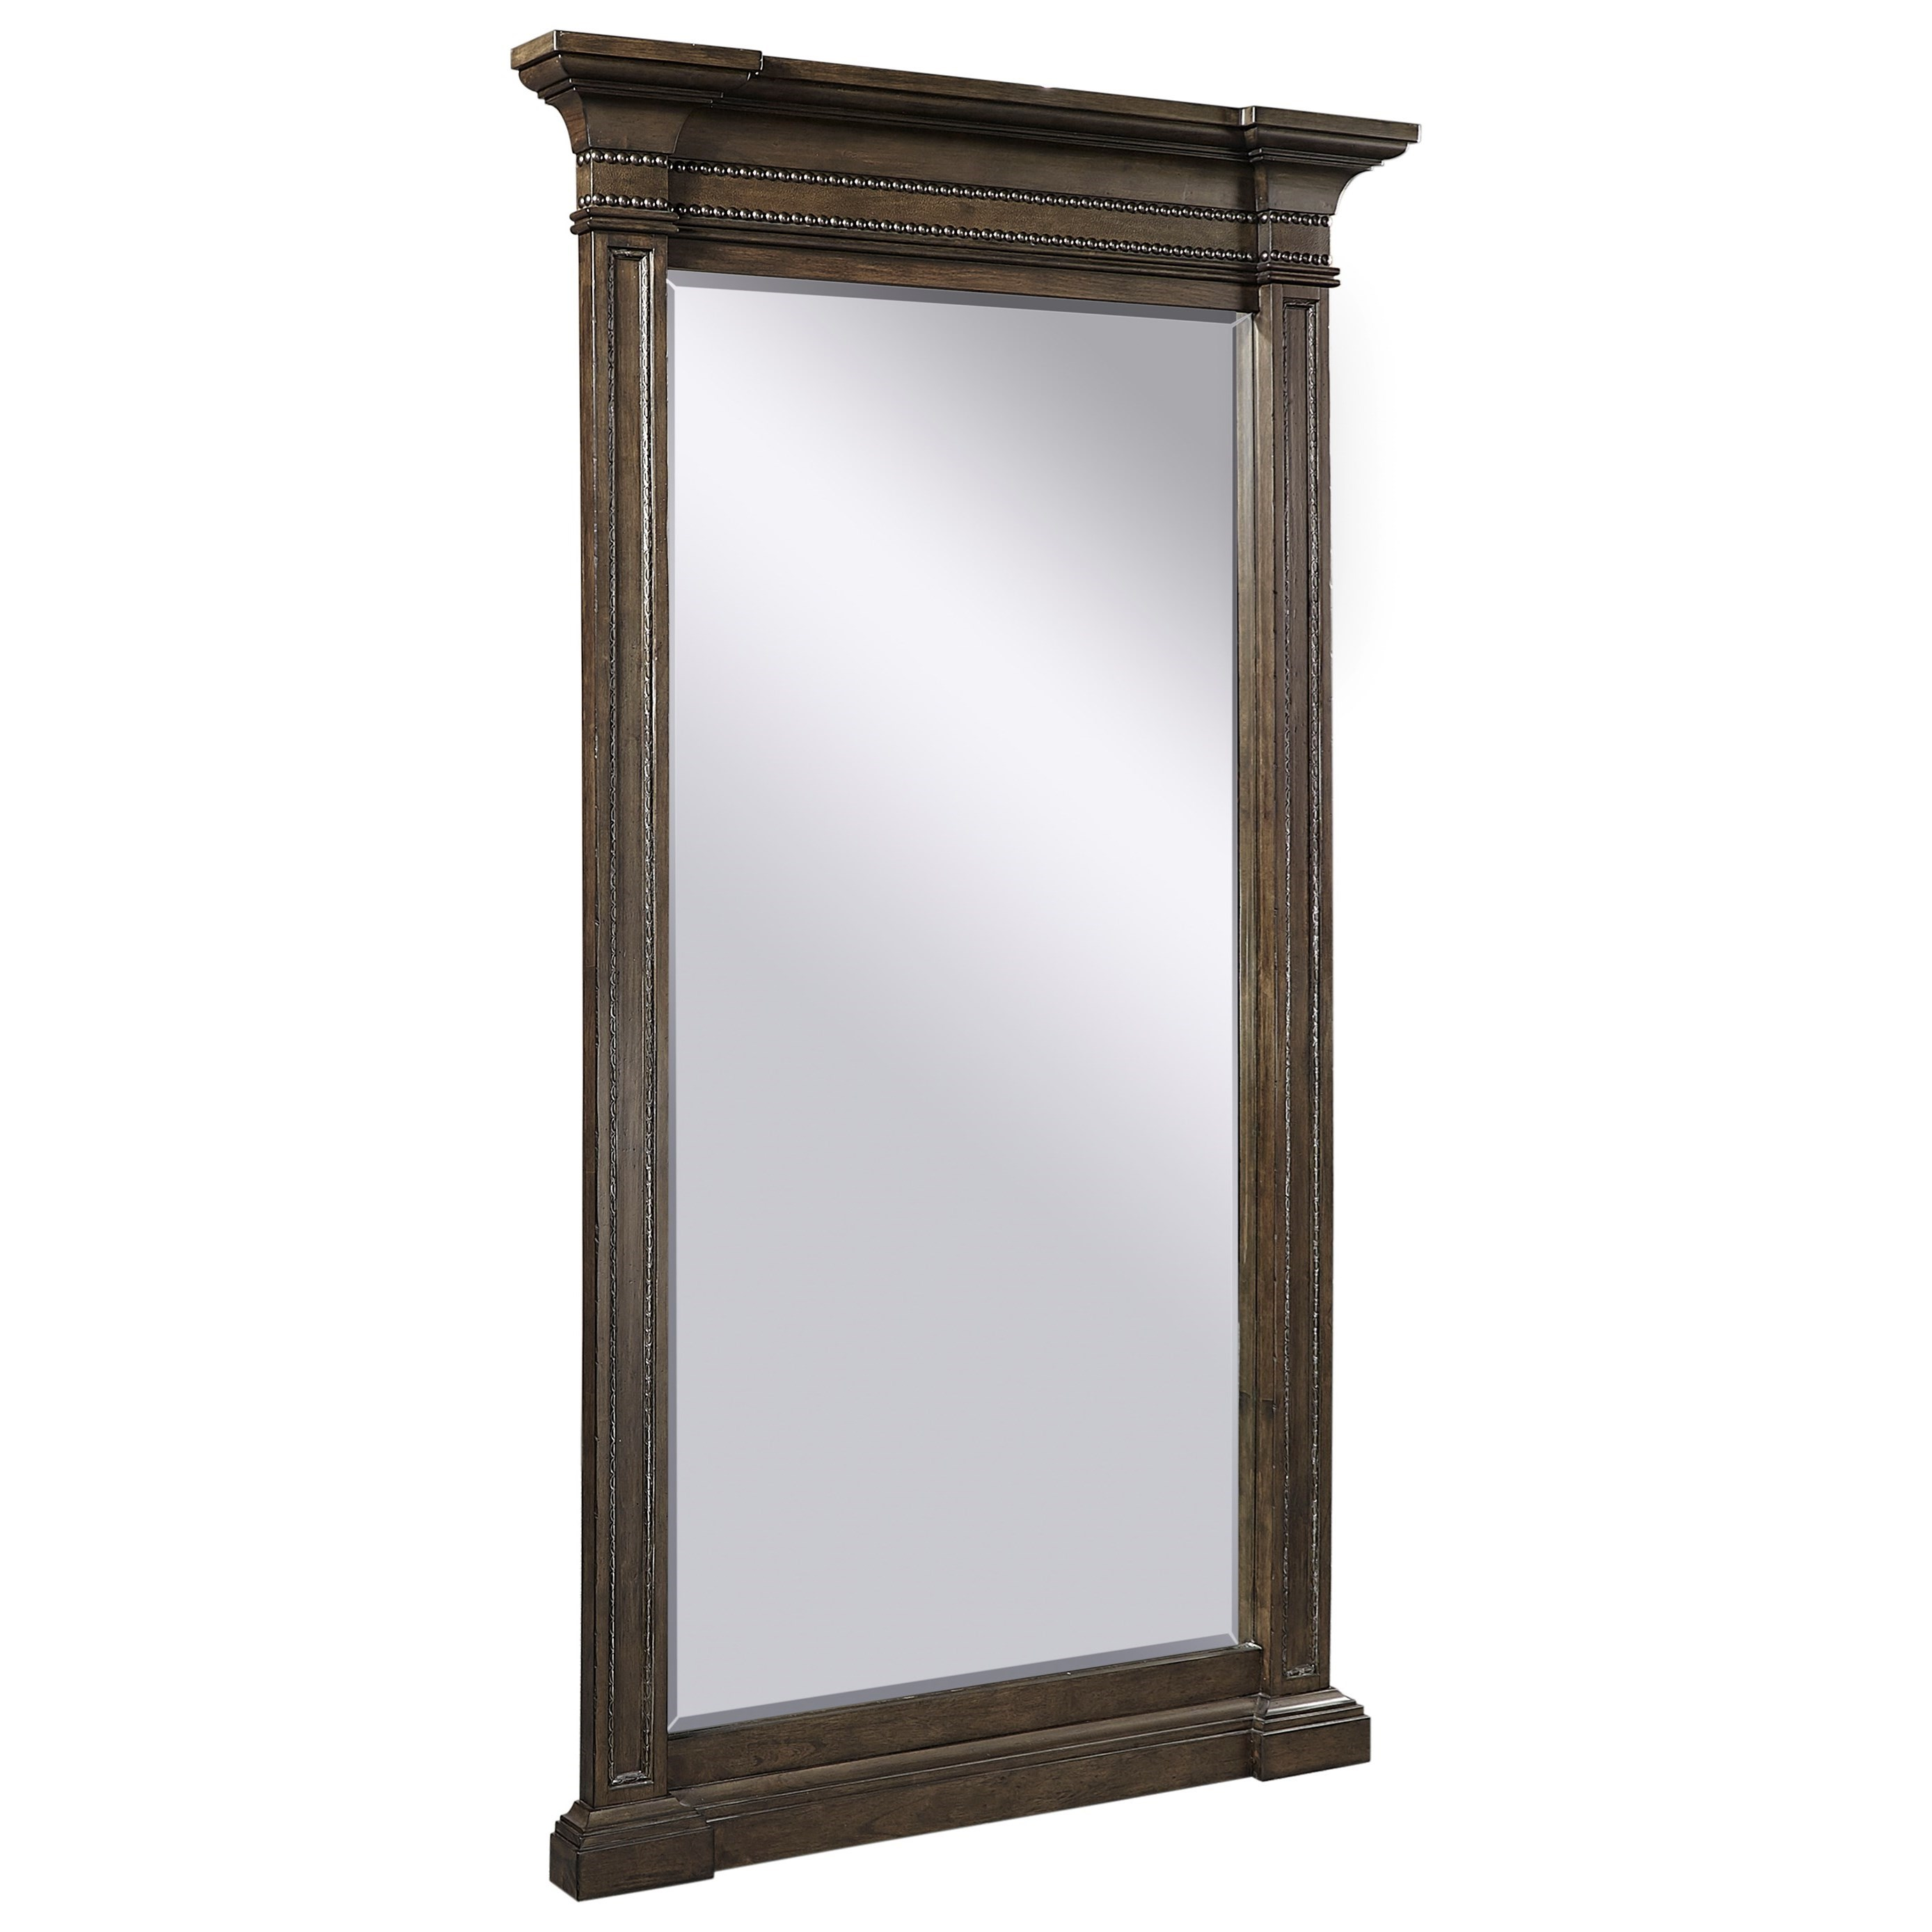 Foxhill Floor Mirror by Aspenhome at Walker's Furniture